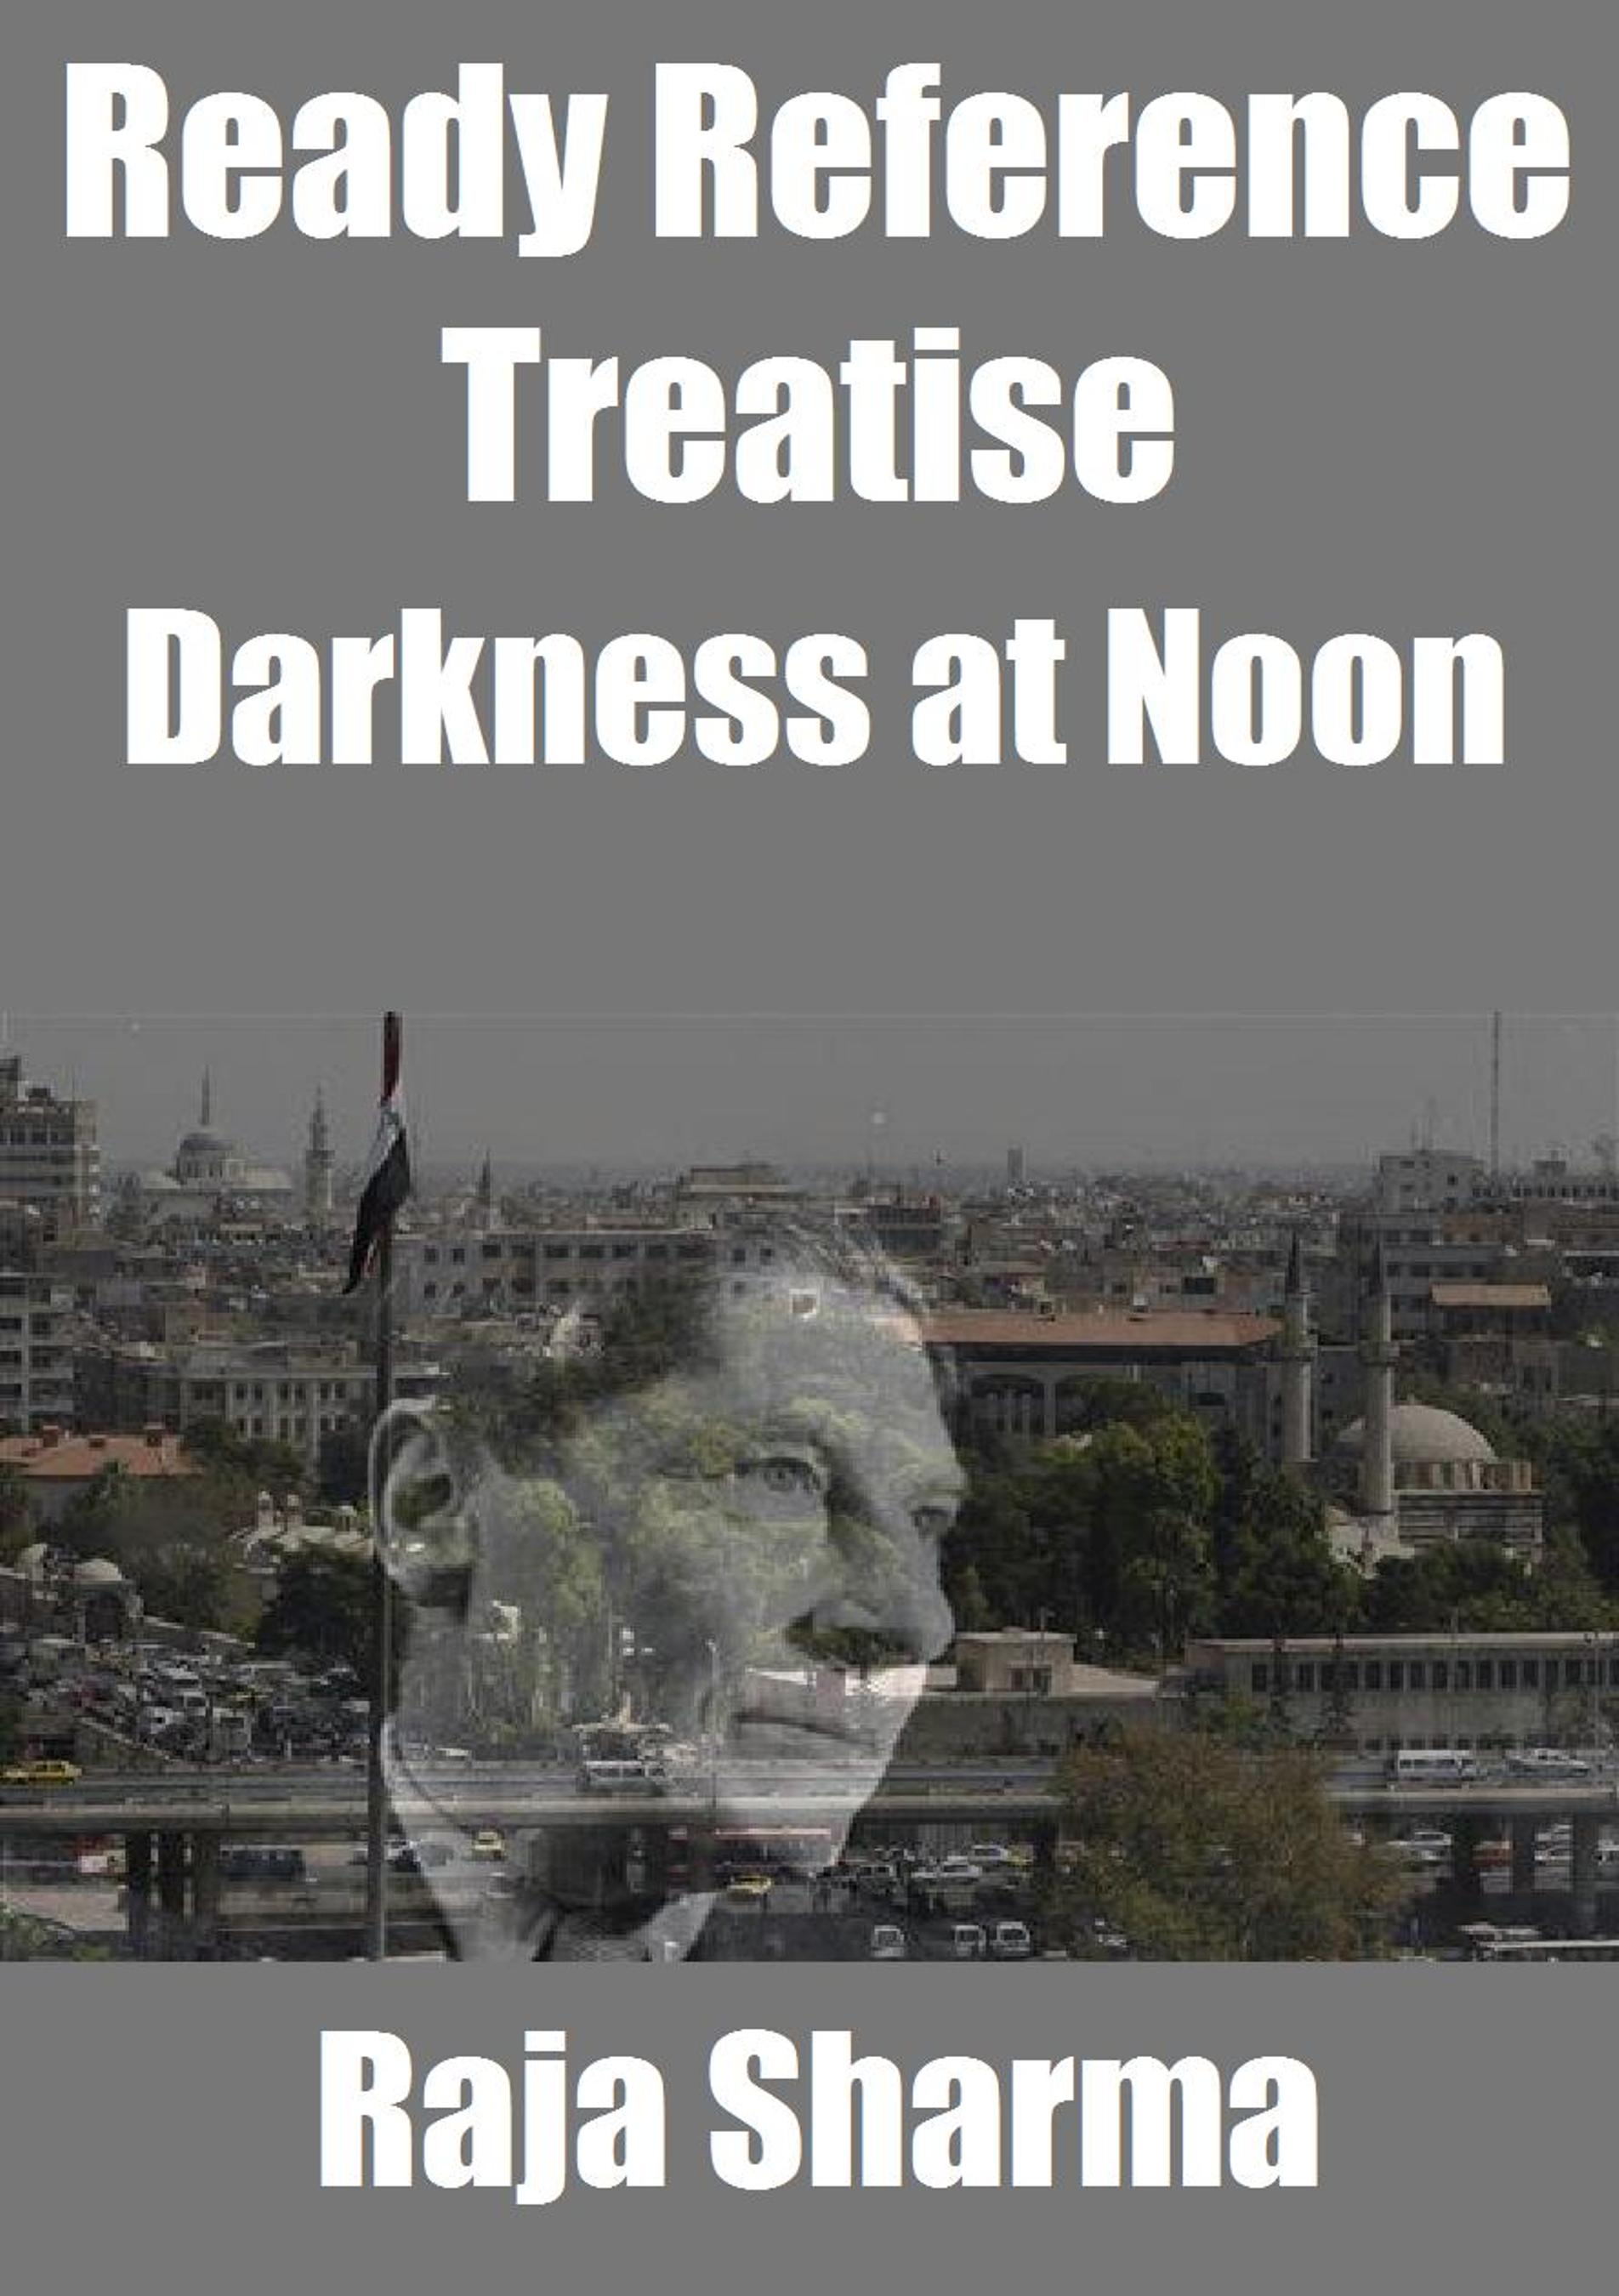 an analysis of nicholas salmanovitch rubashov in darkness at noon by arthur koestler